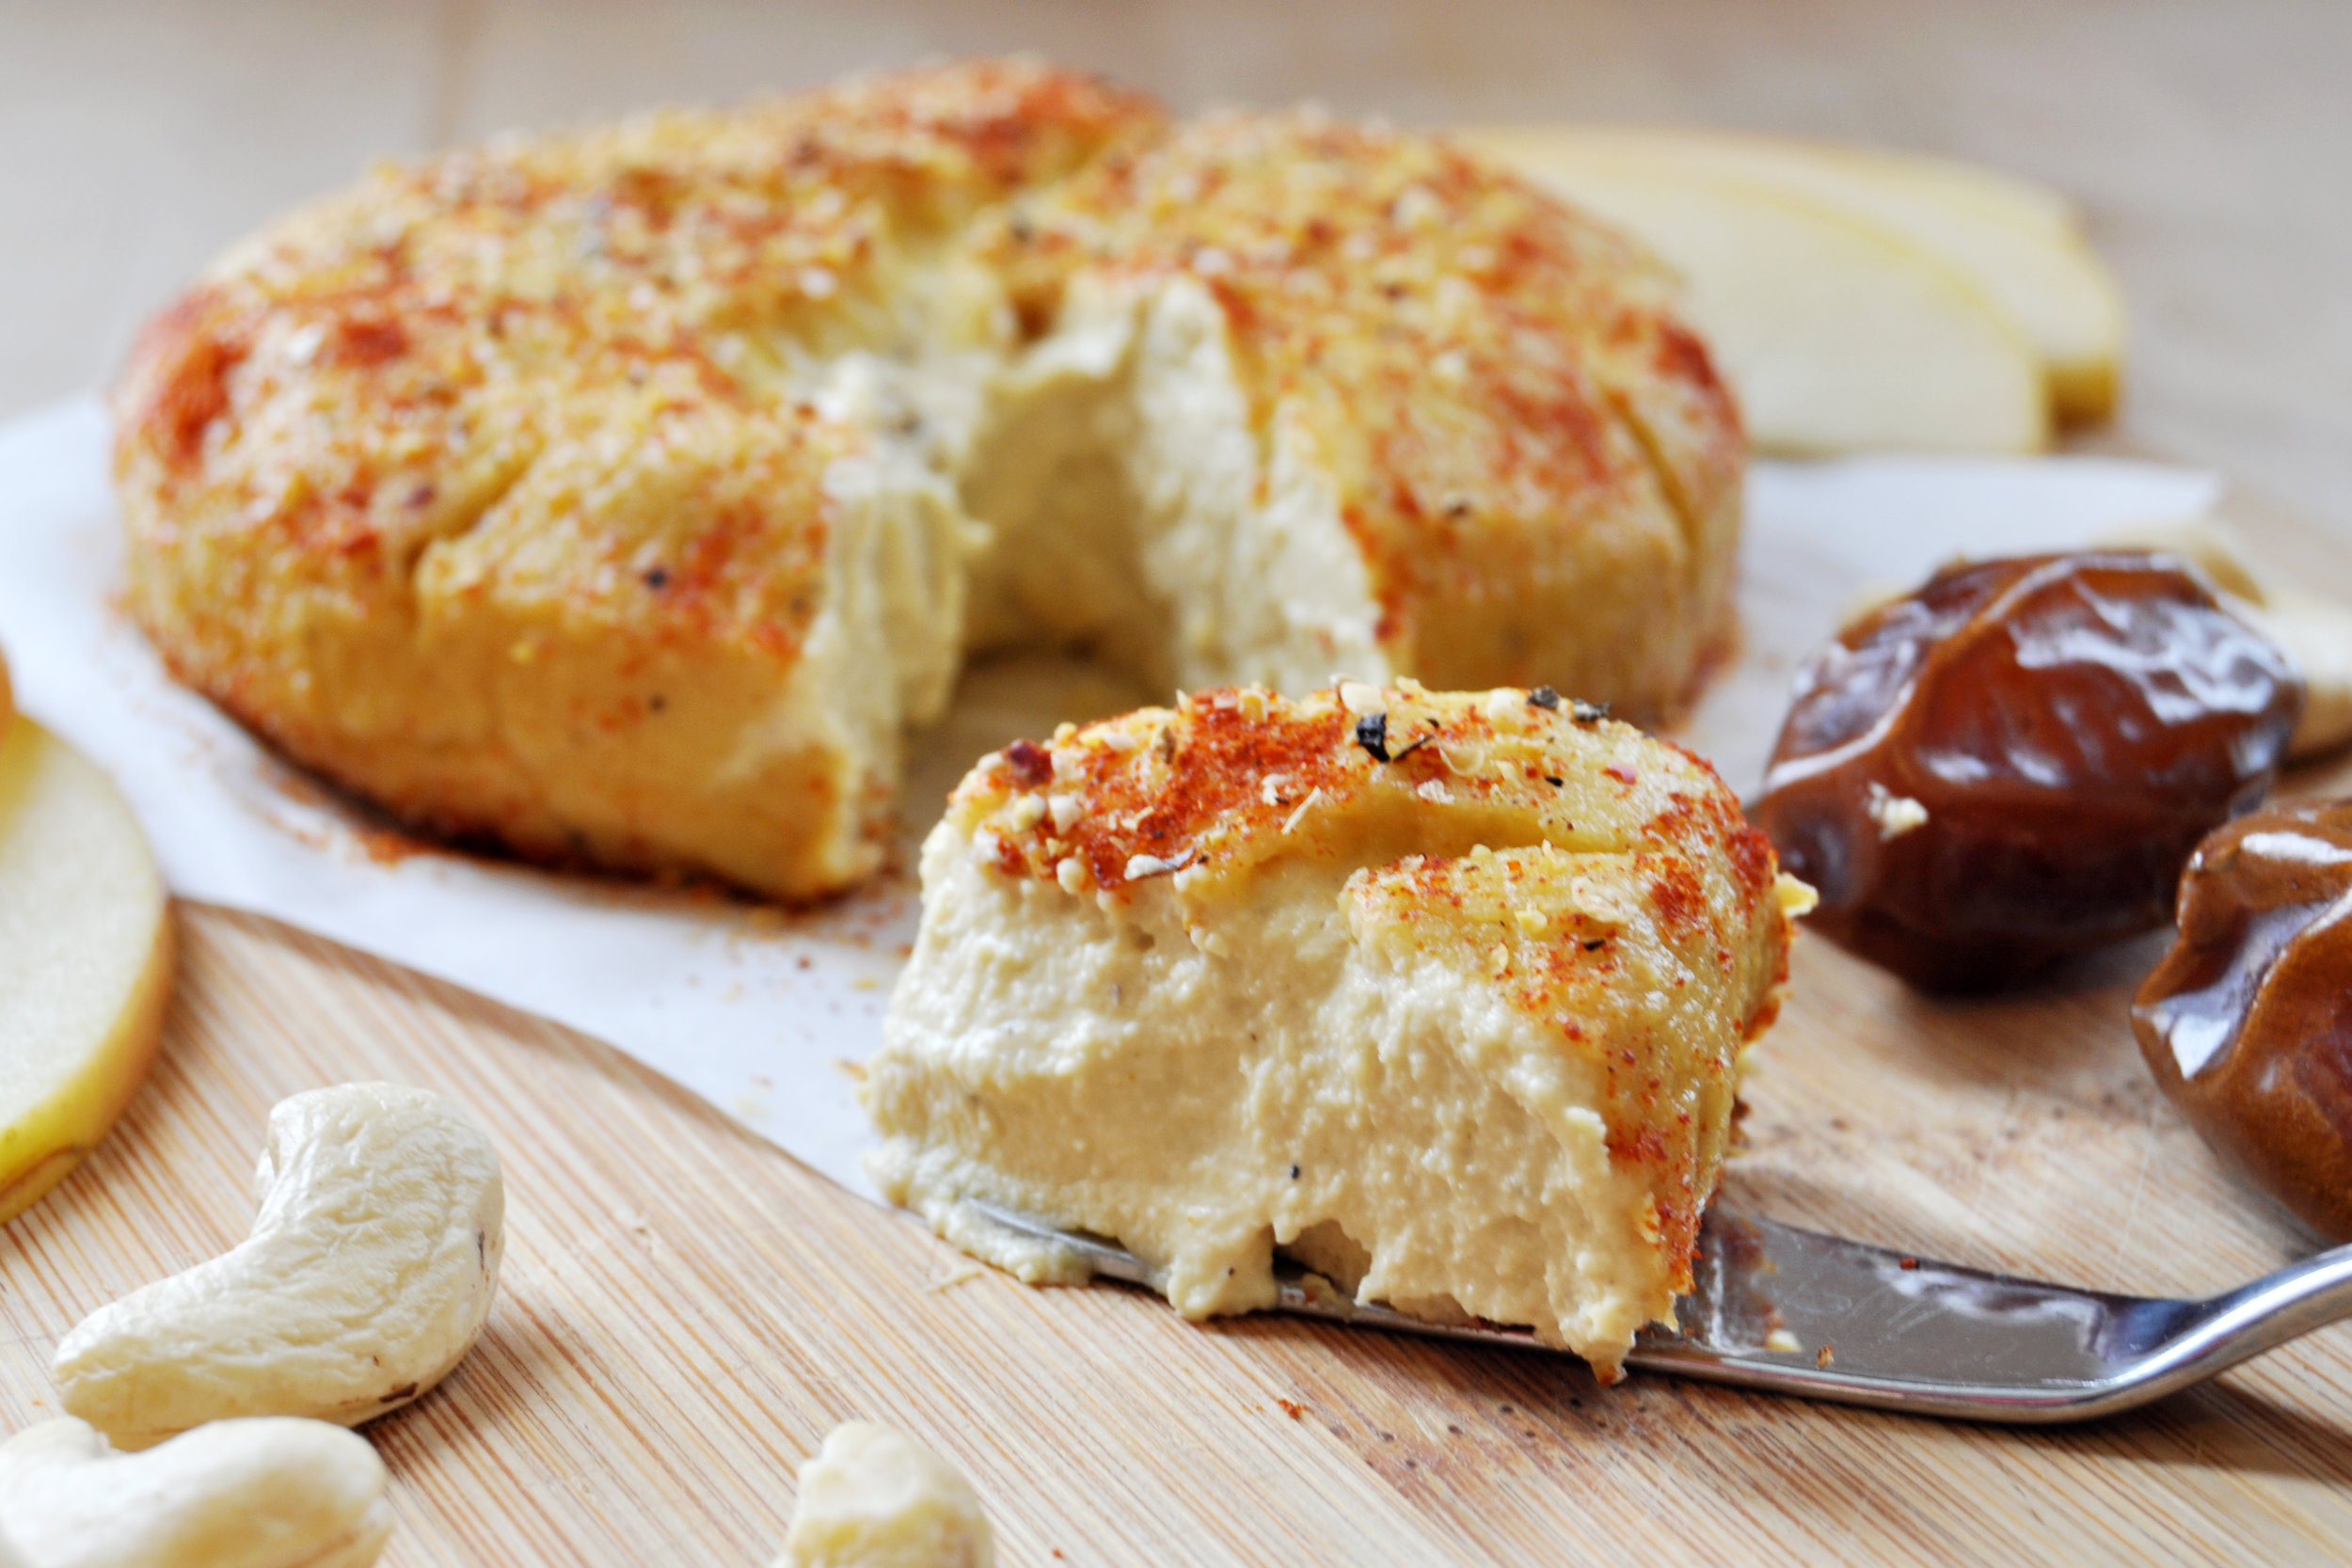 This baked cheese will do wonders for your next cocktail party. Photo by  The Colorful Kitchen